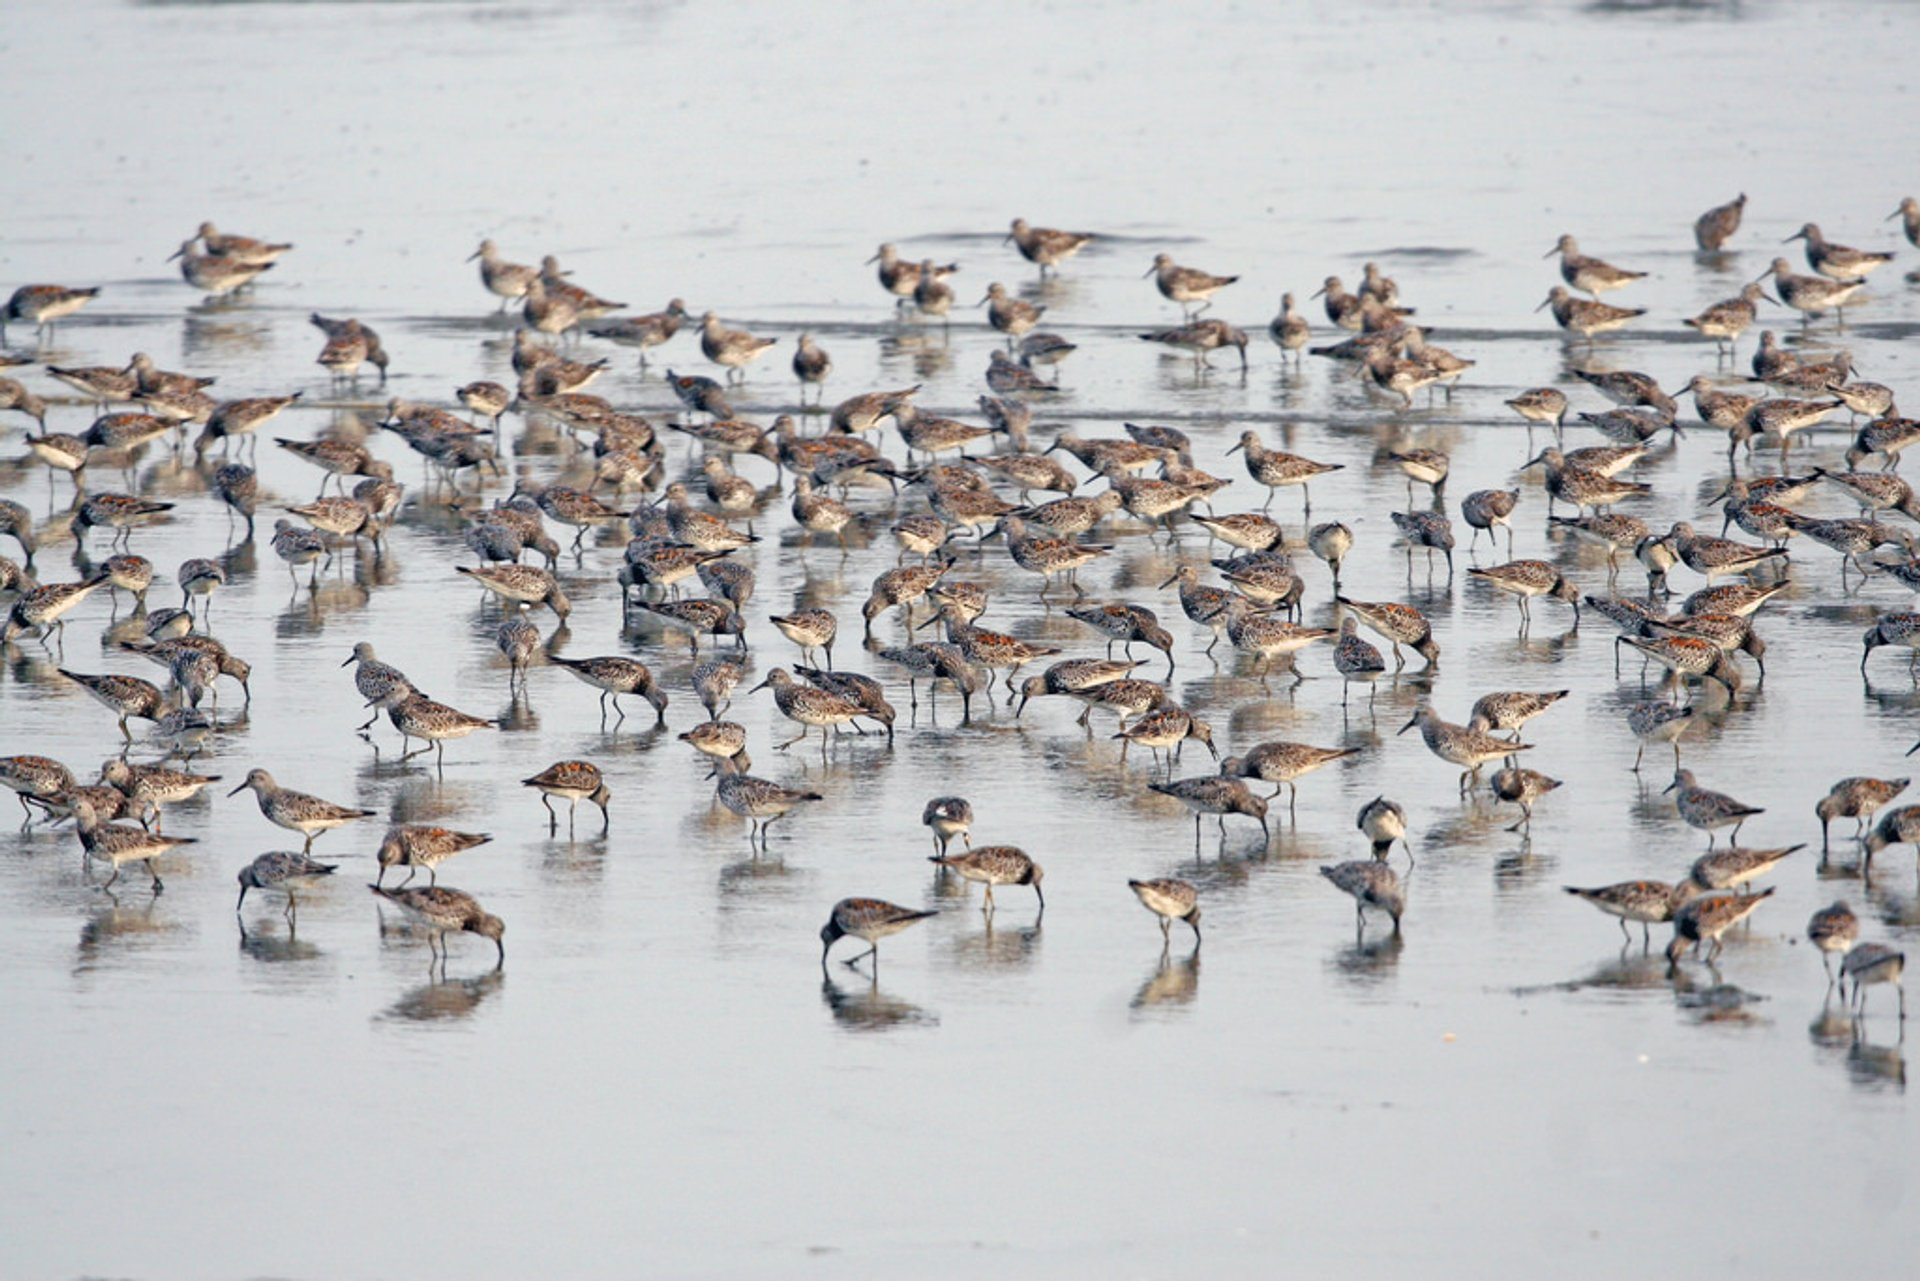 Great Knots (Calidris tenuirostris) feeding on the former Saemangeum flats, South Korea 2020